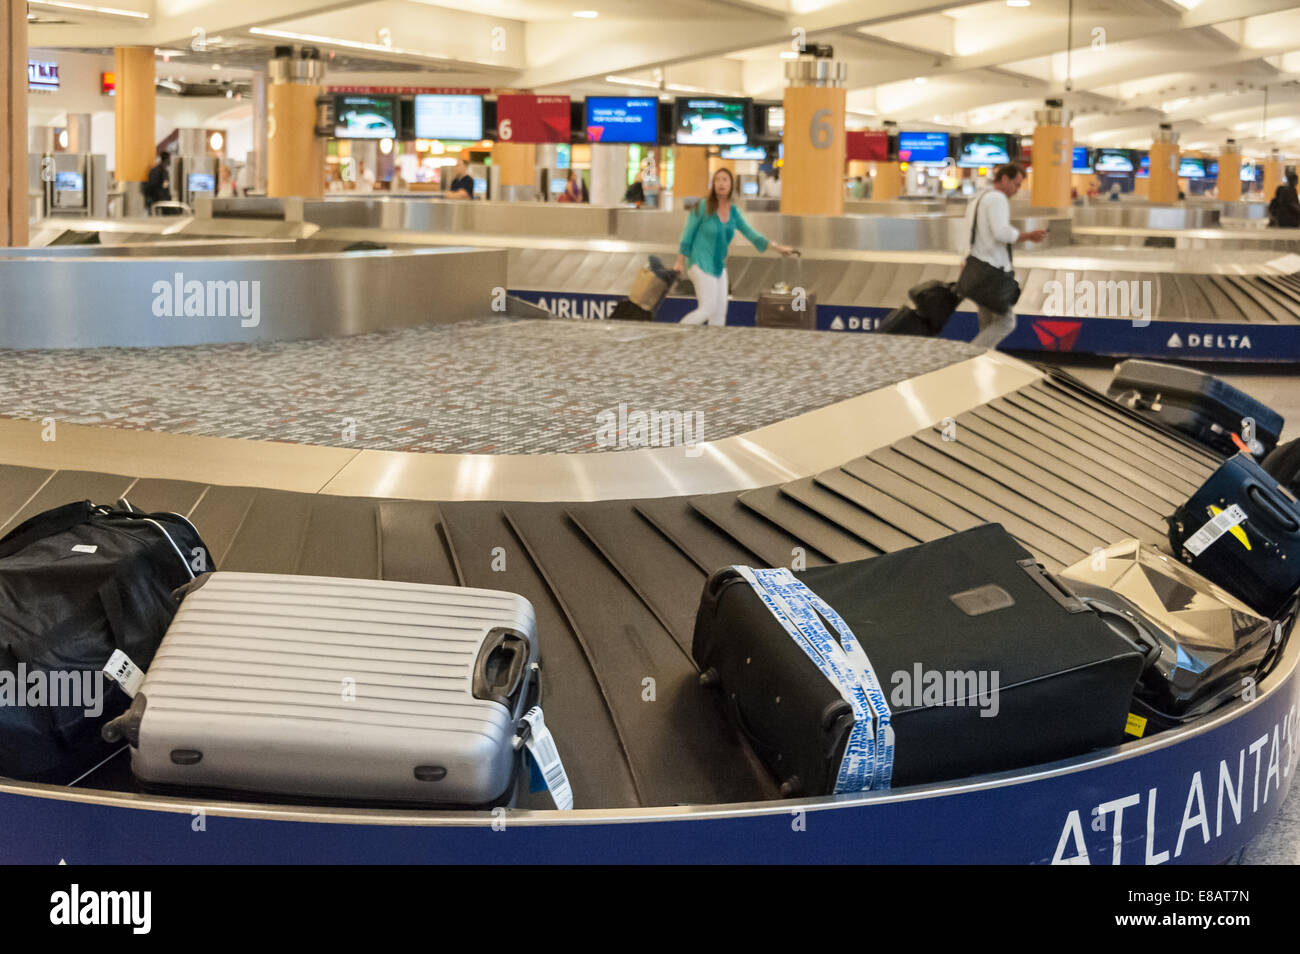 baggage claim carousel and airline passengers at